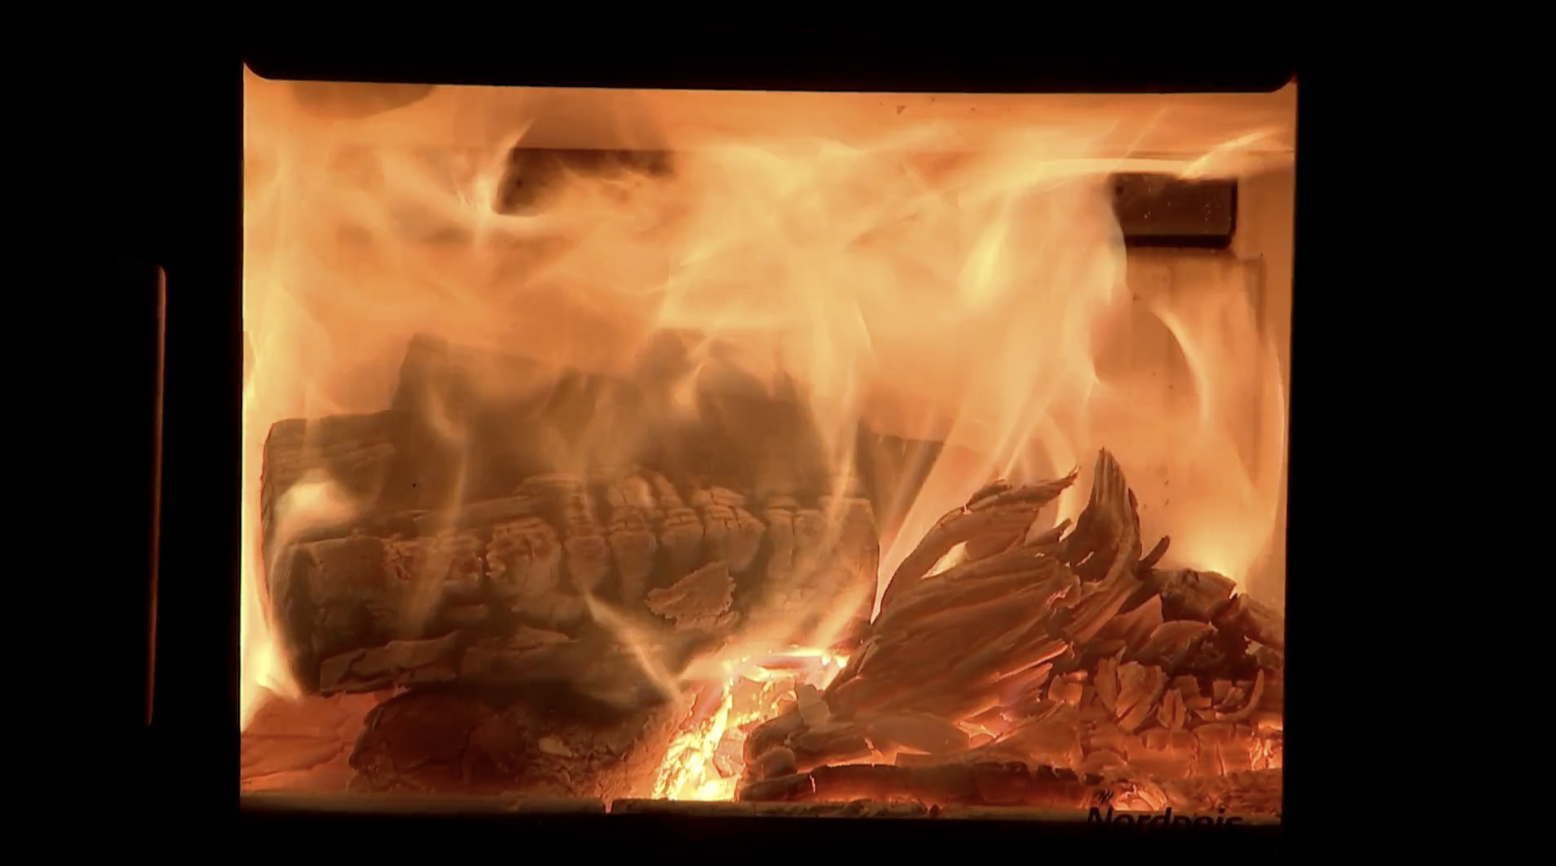 Fuel for coal fires and wood-burning stoves to be banned